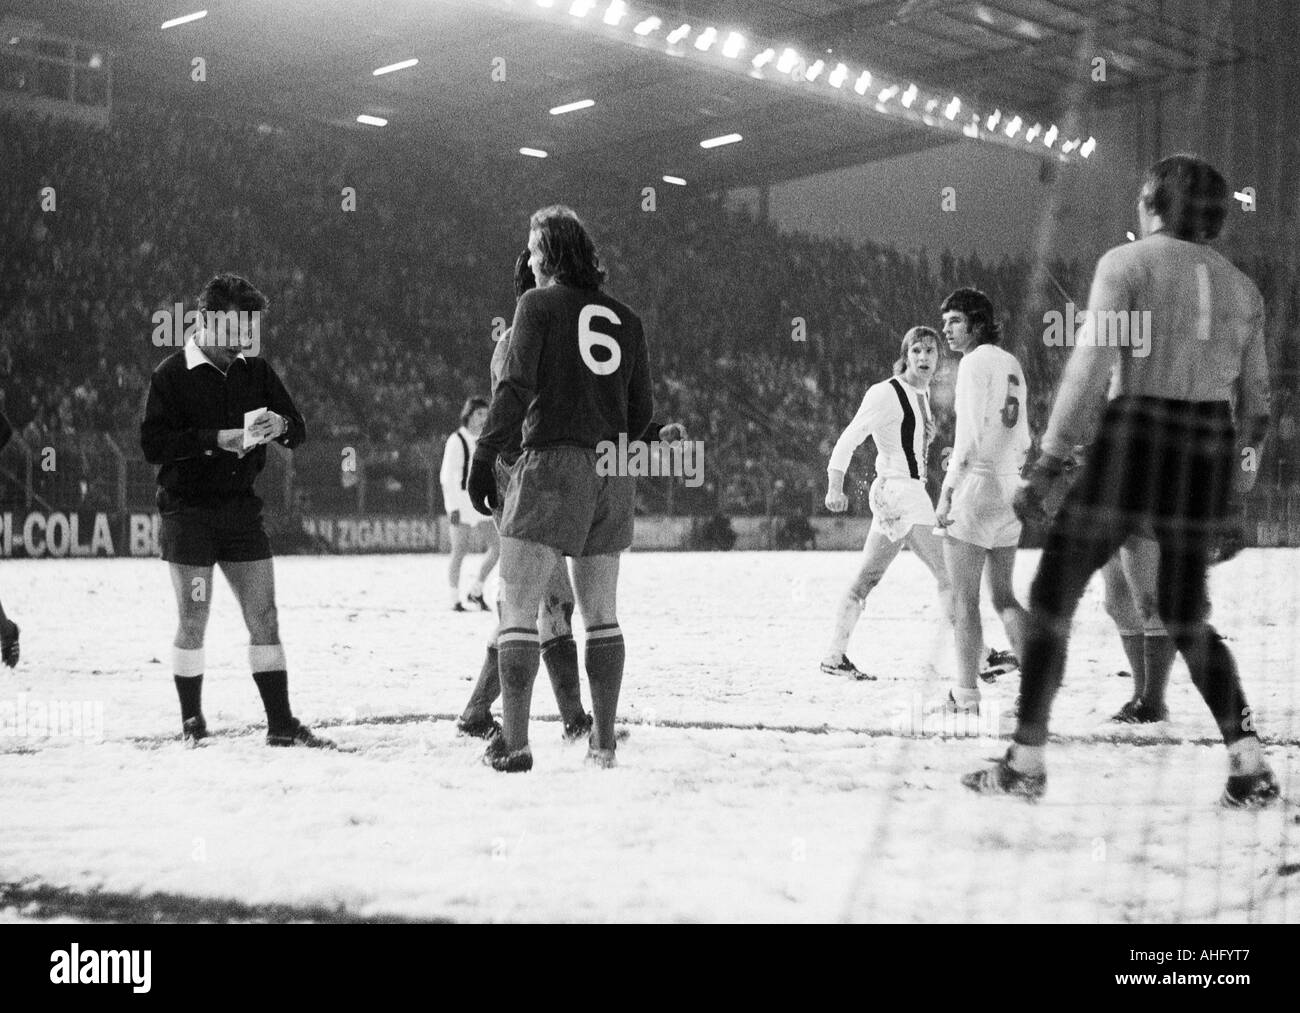 football, DFB Cup, eighth final, 1973/1974, Borussia Moenchengladbach versus Hamburger SV 2:2 after extra time, Boekelberg Stadium in Moenchengladbach, game on snow ground, scene of the match, time-out after a foul play, f.l.t.r. referee Dieter Berner fro - Stock Image